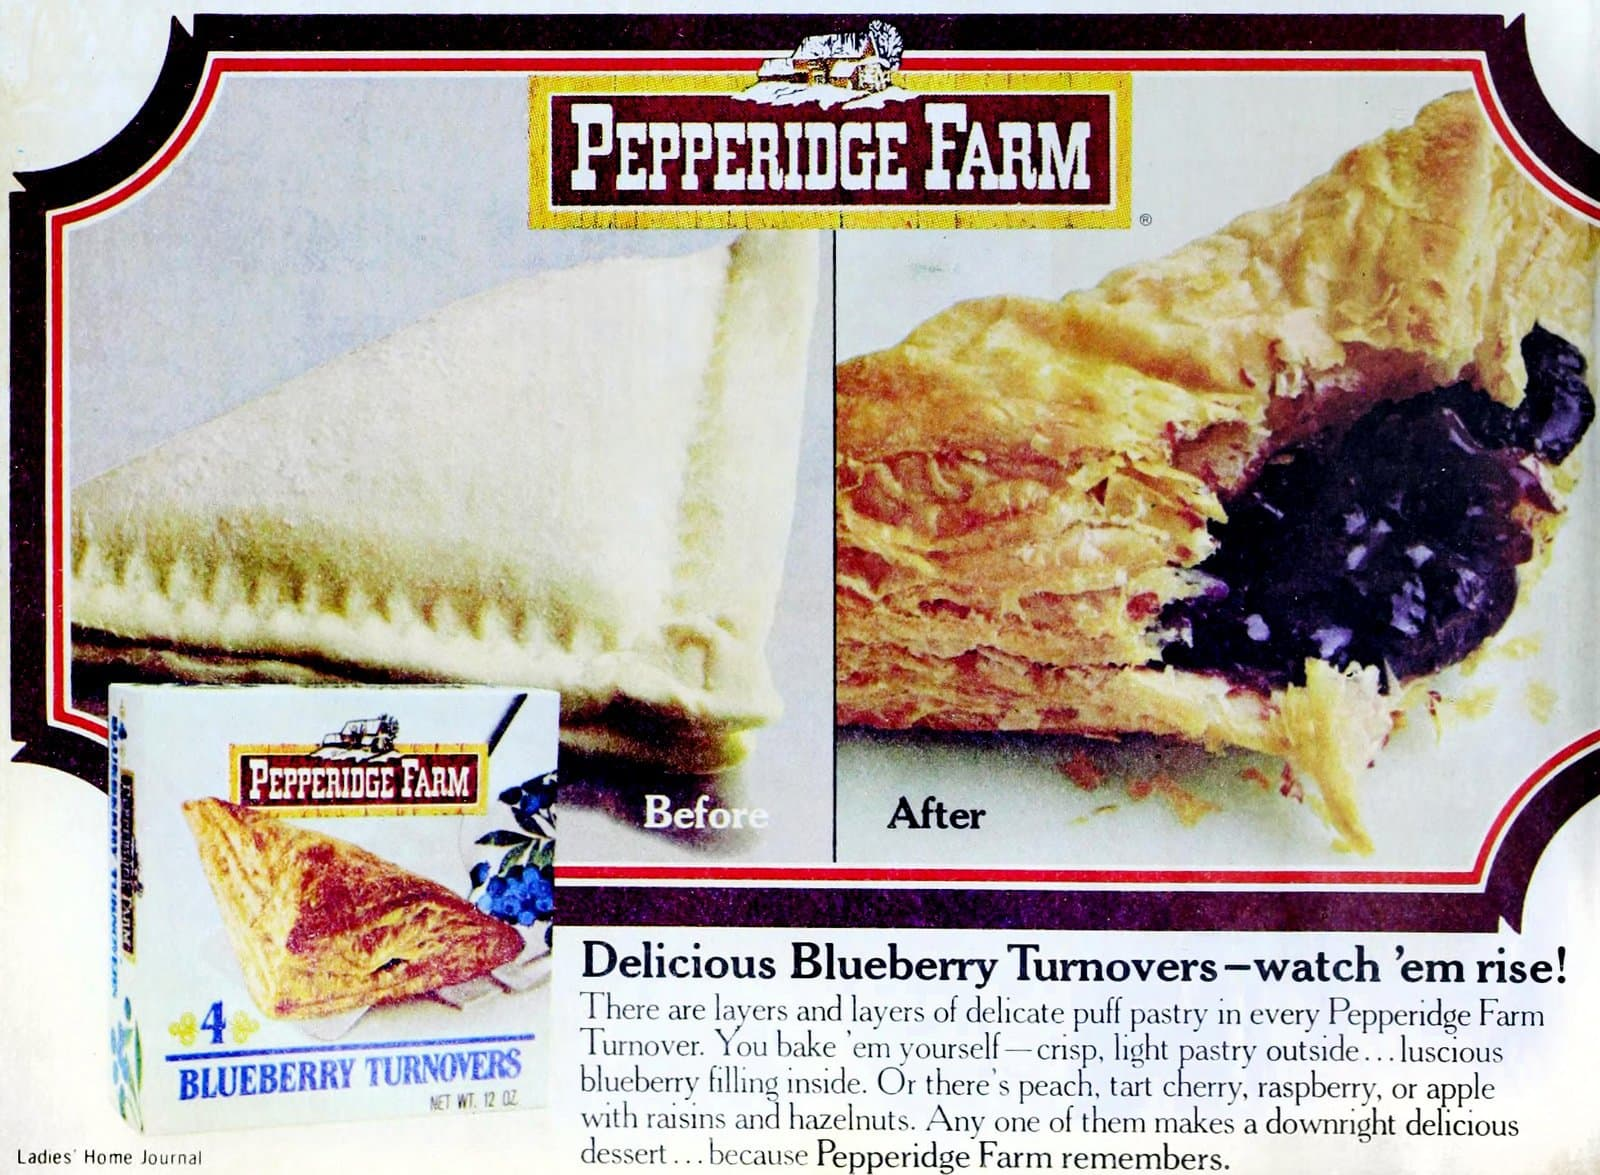 PF Blueberry turnovers before and after (1976)